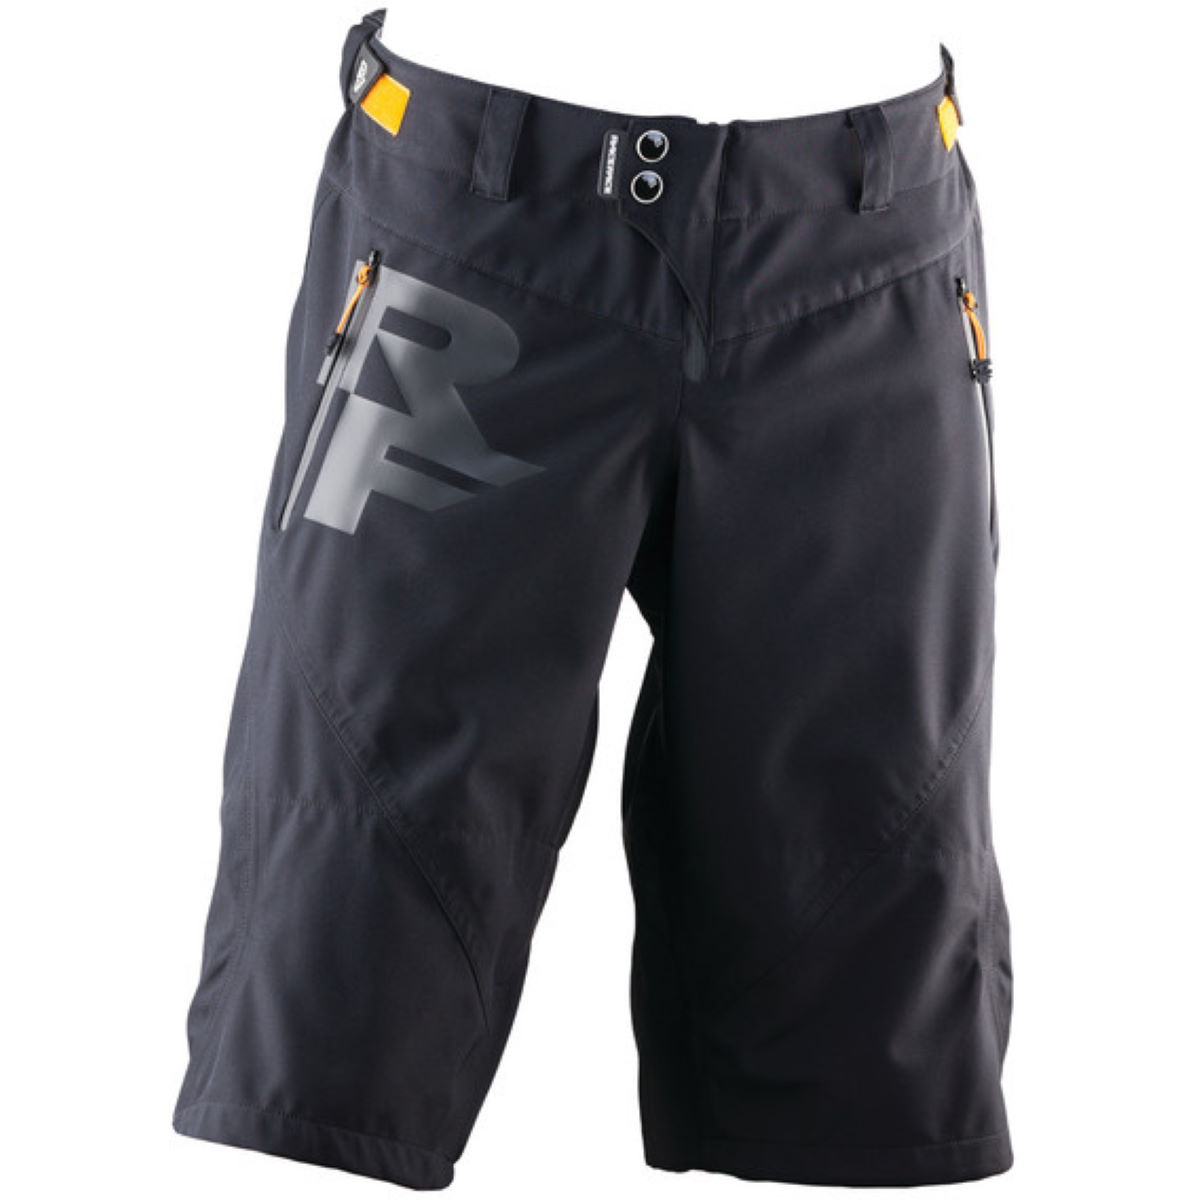 Short Race Face Agent (hiver) - S Noir Shorts amples